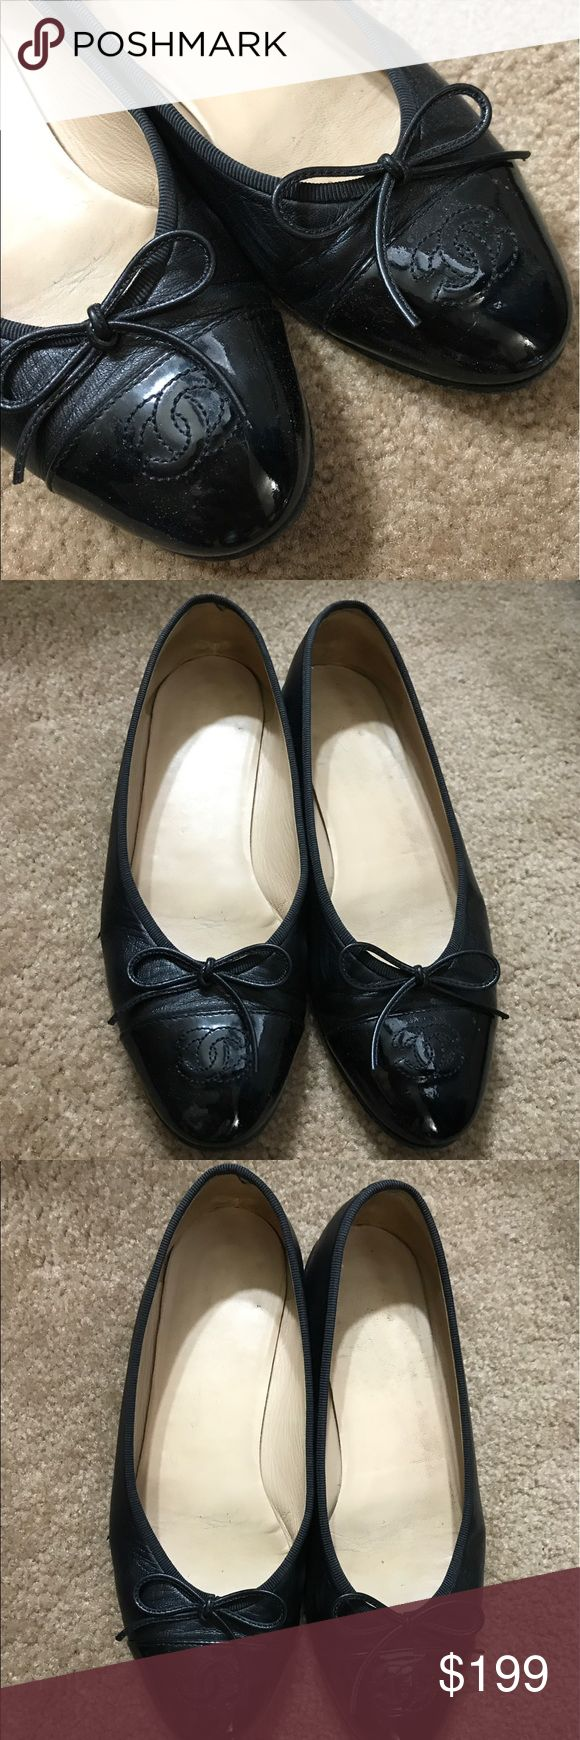 Channel classic ballet flats Size 38.5 RUNS SMALL. please be aware of your size. Classic style. Great piece to invest in. CHANEL Shoes Flats & Loafers